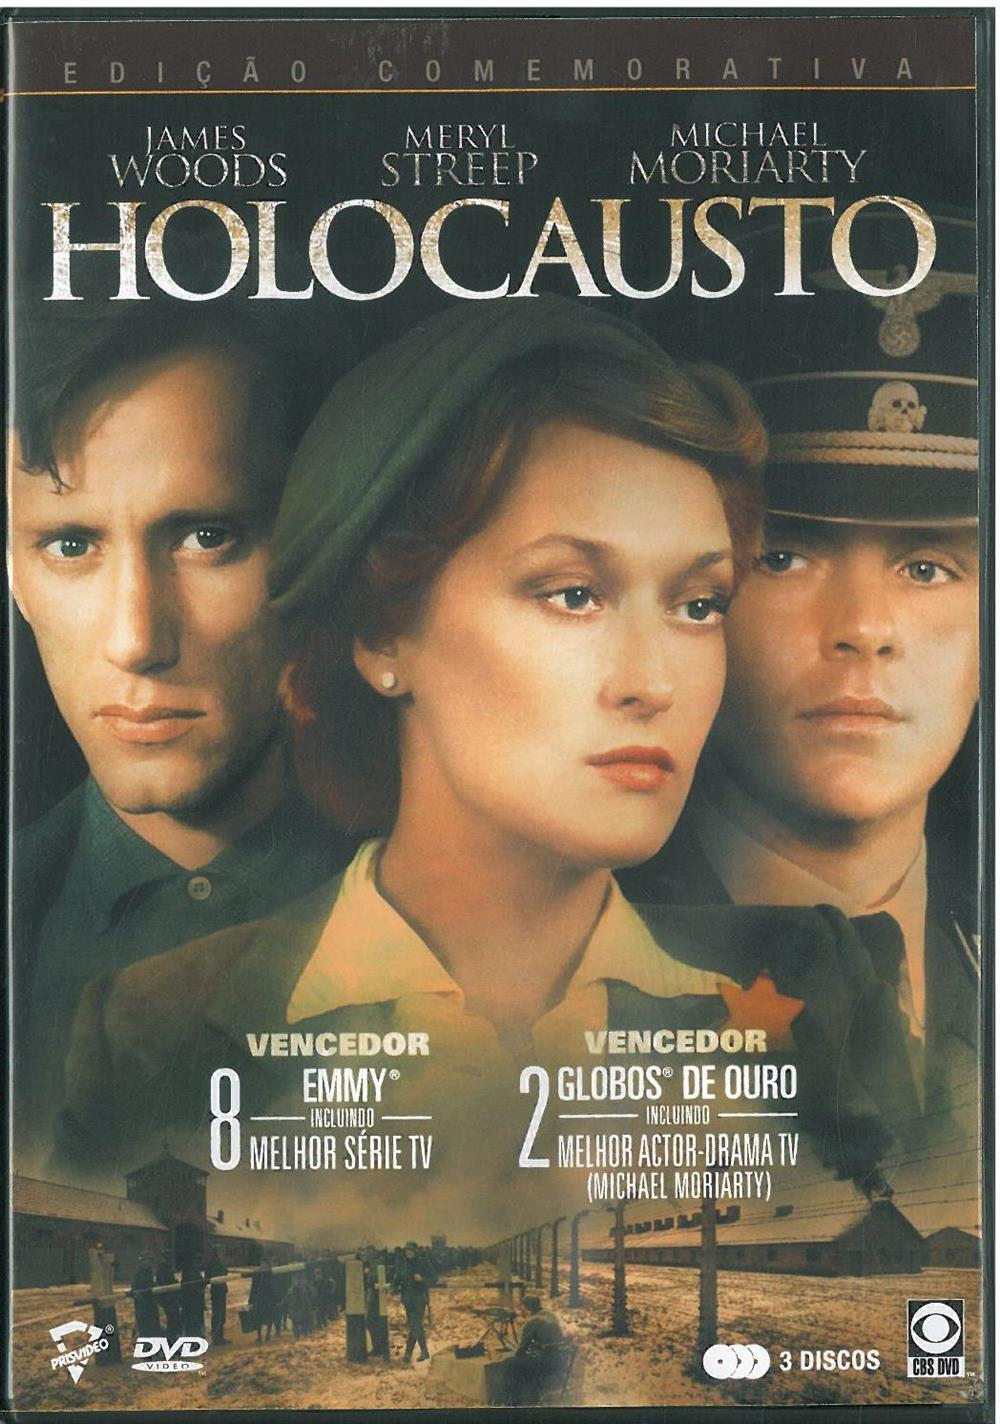 Holocausto_DVD.jpg